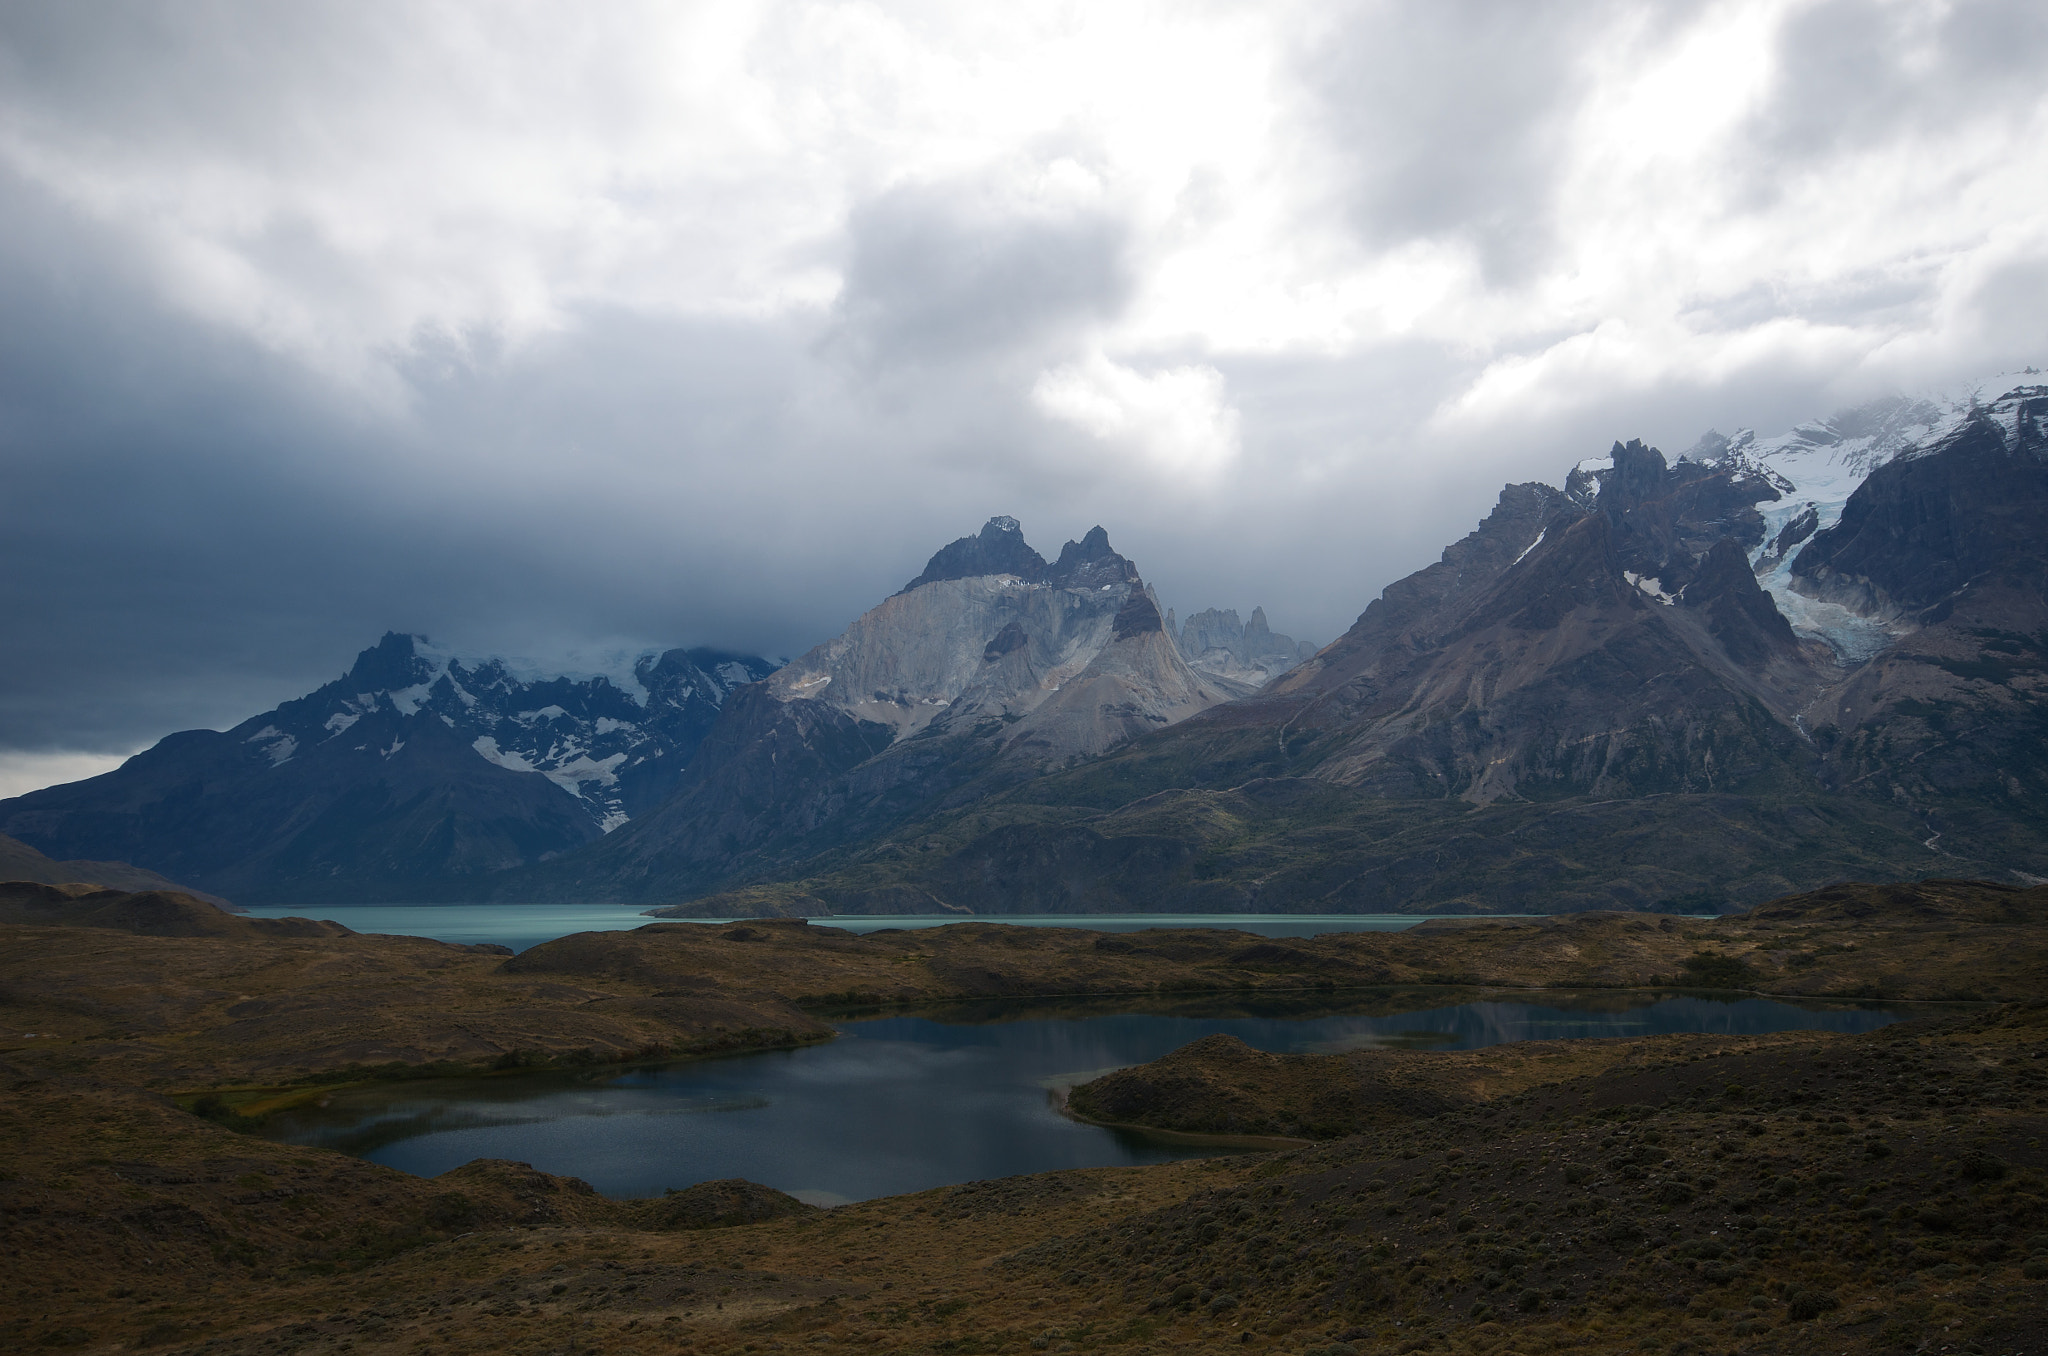 Photograph Lakes and mountains at Torres del Paine by Remco Douma on 500px